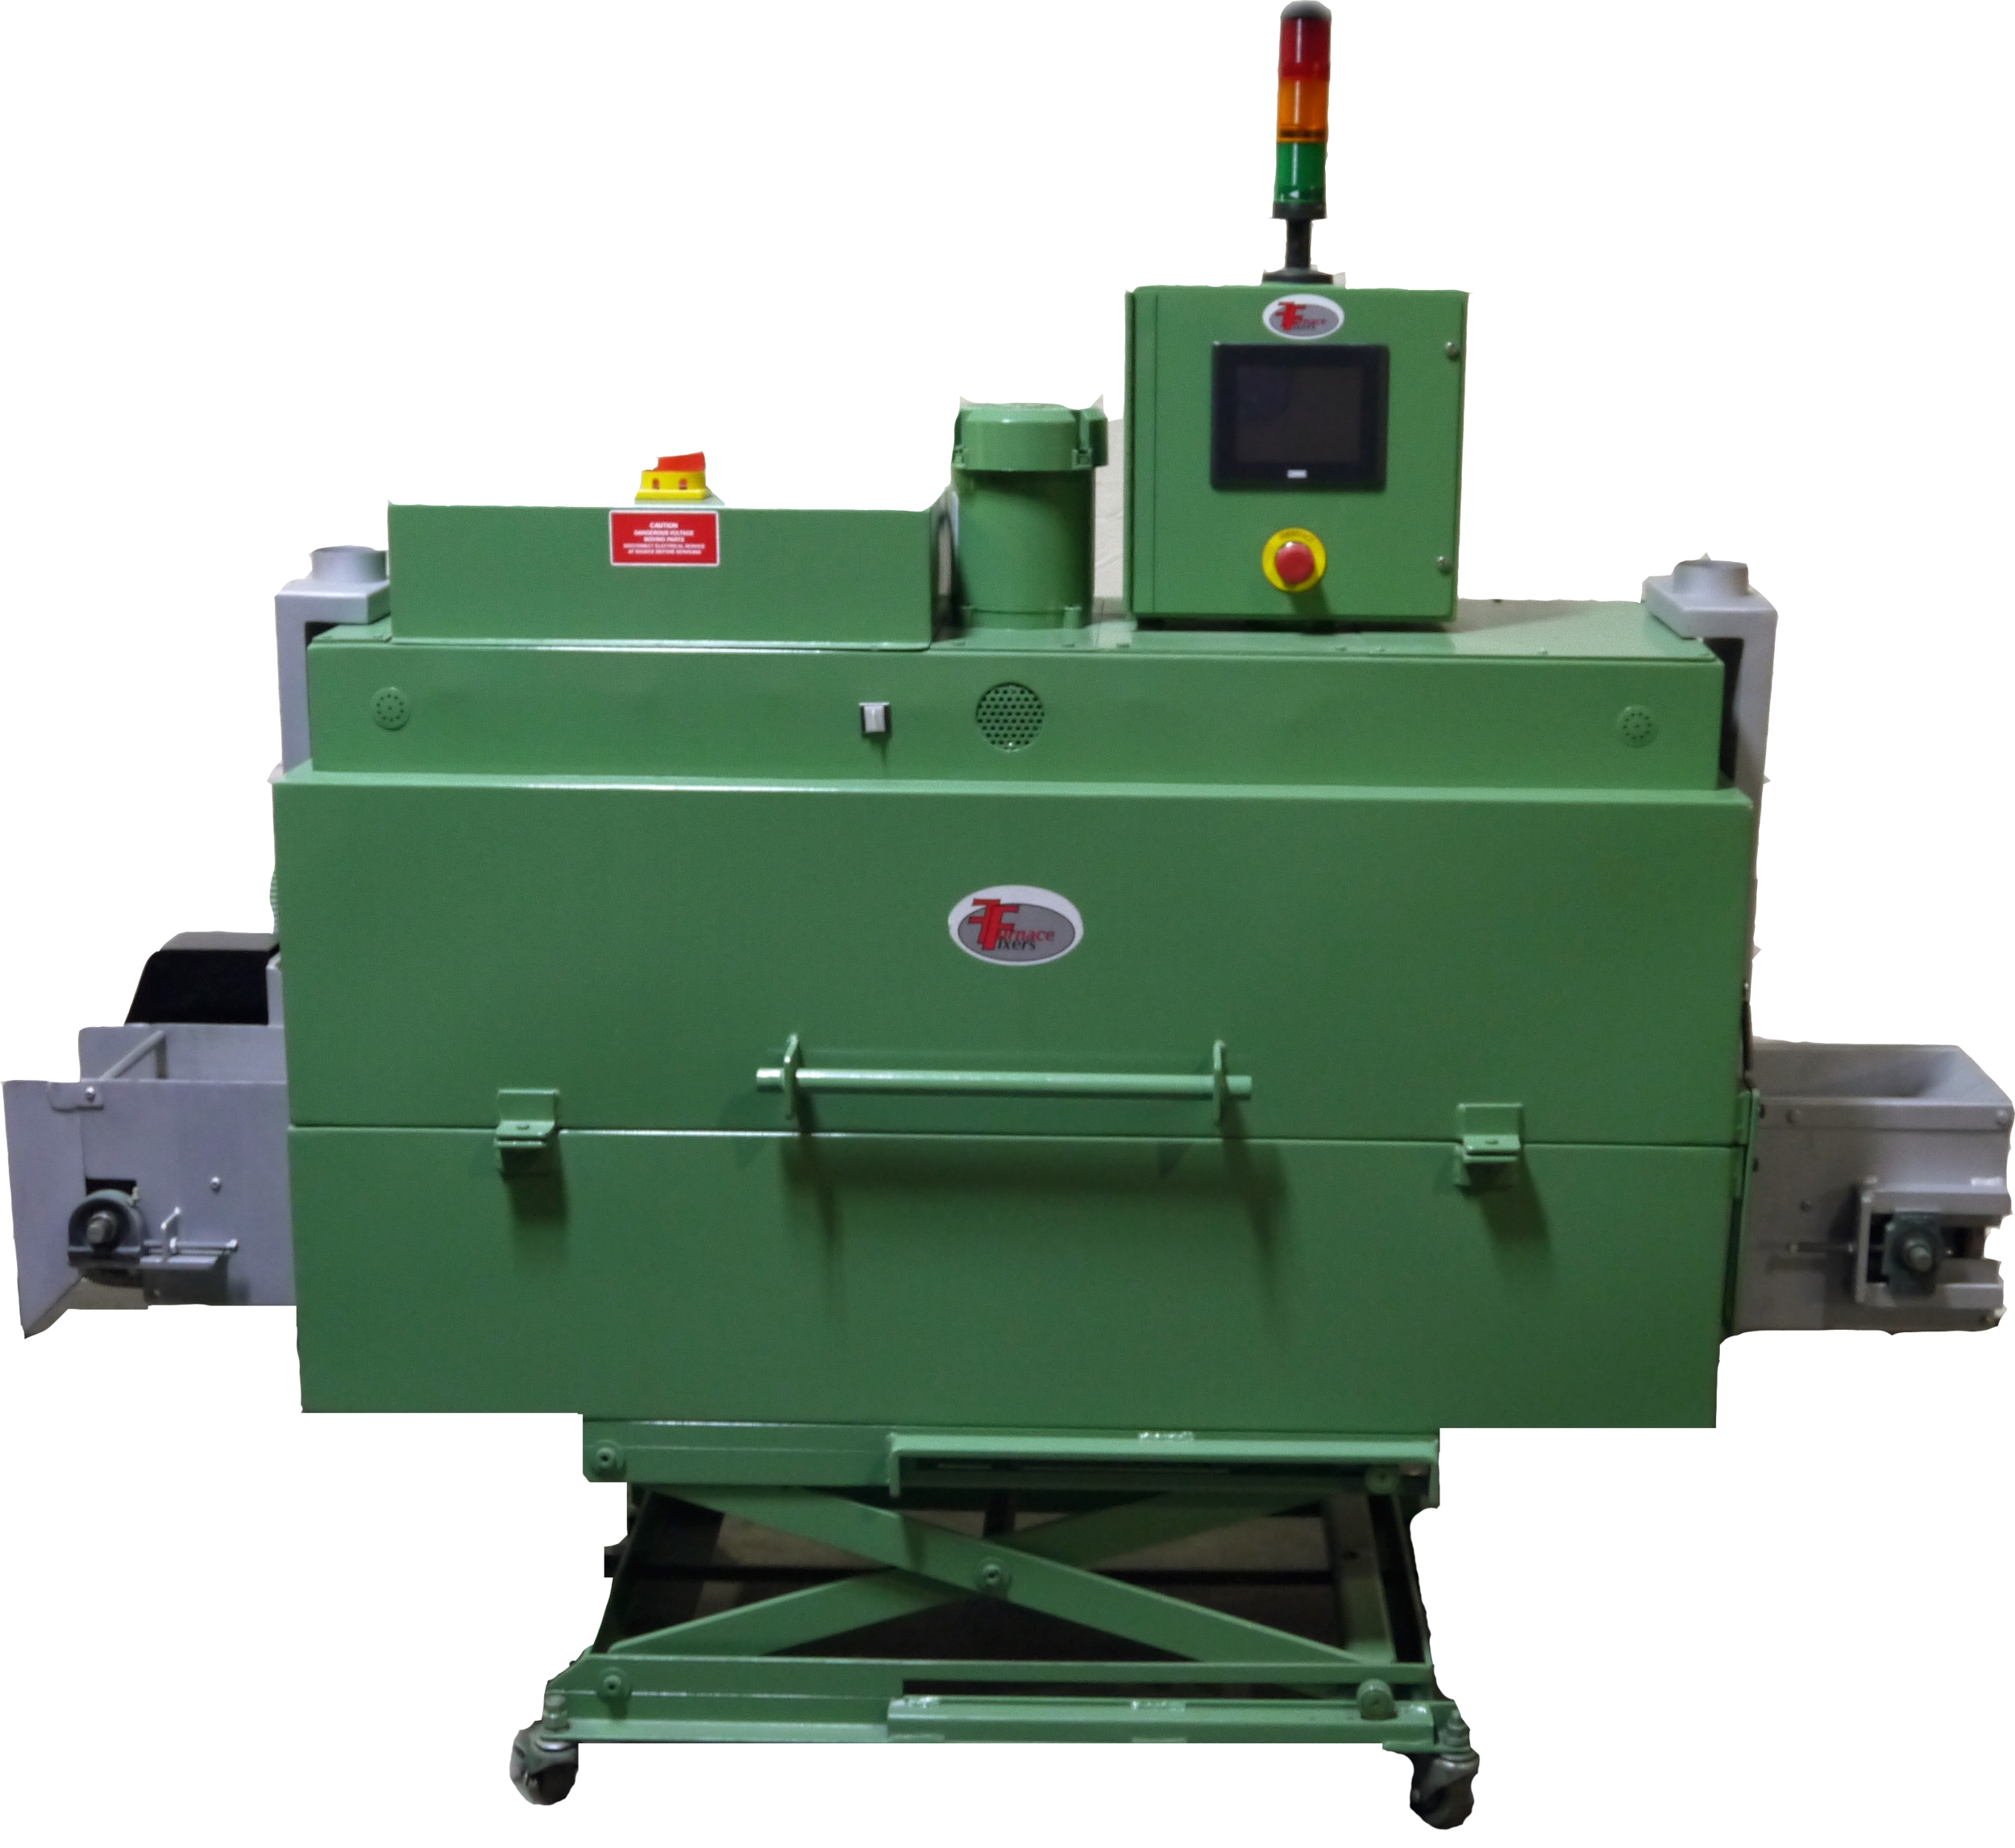 MEDICAL FURNACE: OUR MEDICAL FURNACE USED INSULATION THAT WAS TREATED WITH A SPECIAL SOLUTION TO ELIMINATE ANY PARTICULATES FROM CONTAMINATING THE PARTS.